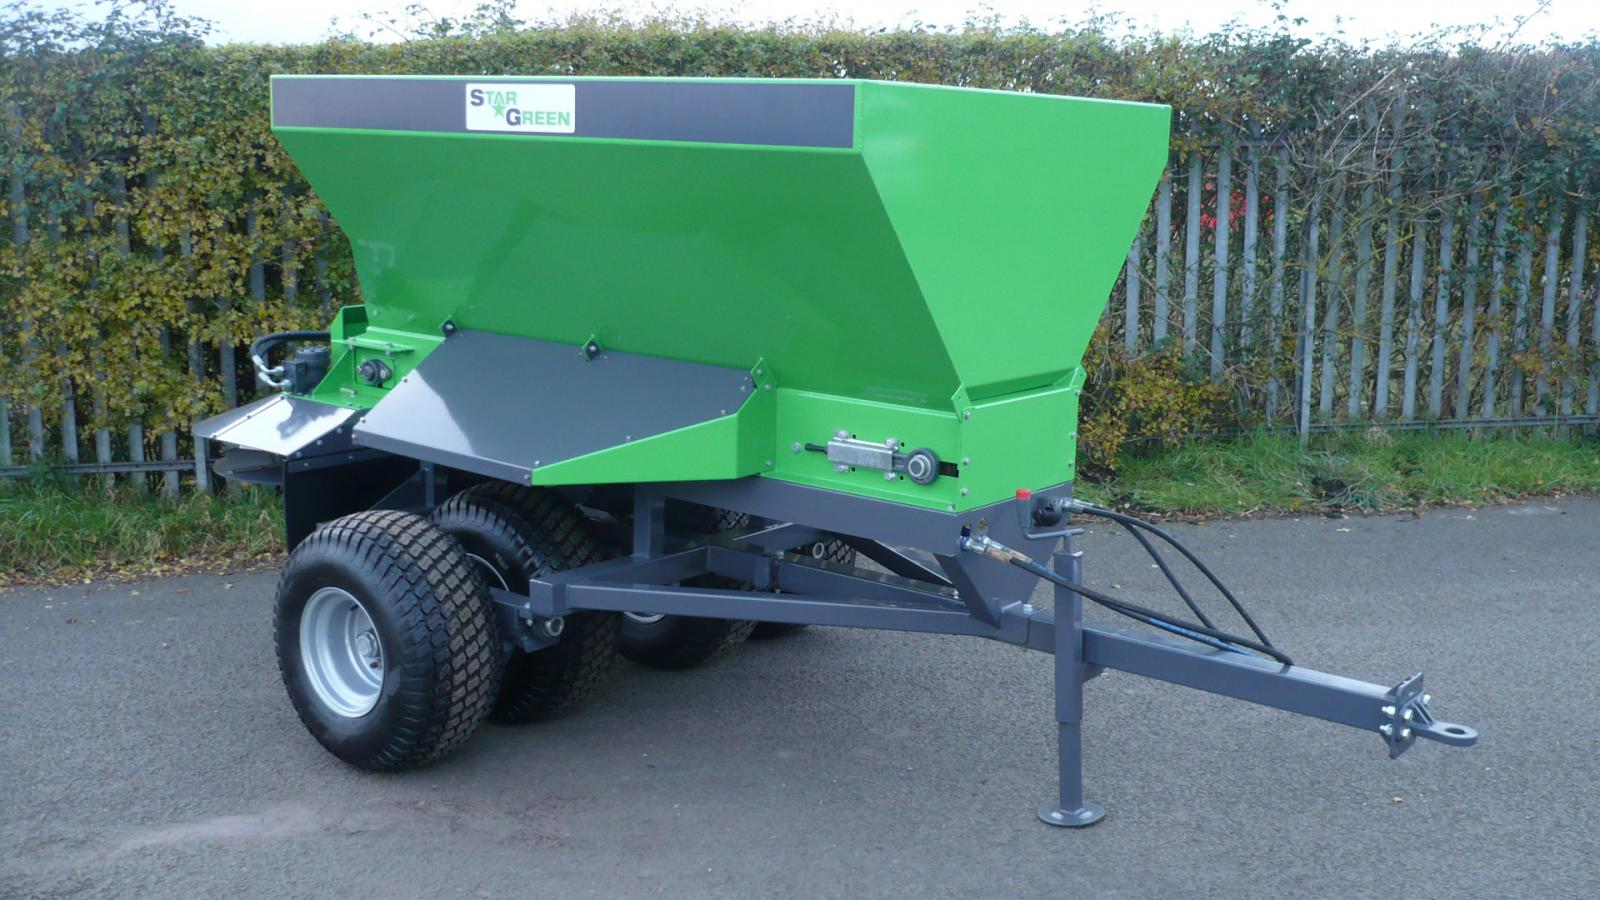 The TD1500T STARGREEN Trailed Turf Care Top Dresser was specifically created for top dressing turf playing and sports surfaces, being a tow-behind design for suitably sized tractors.